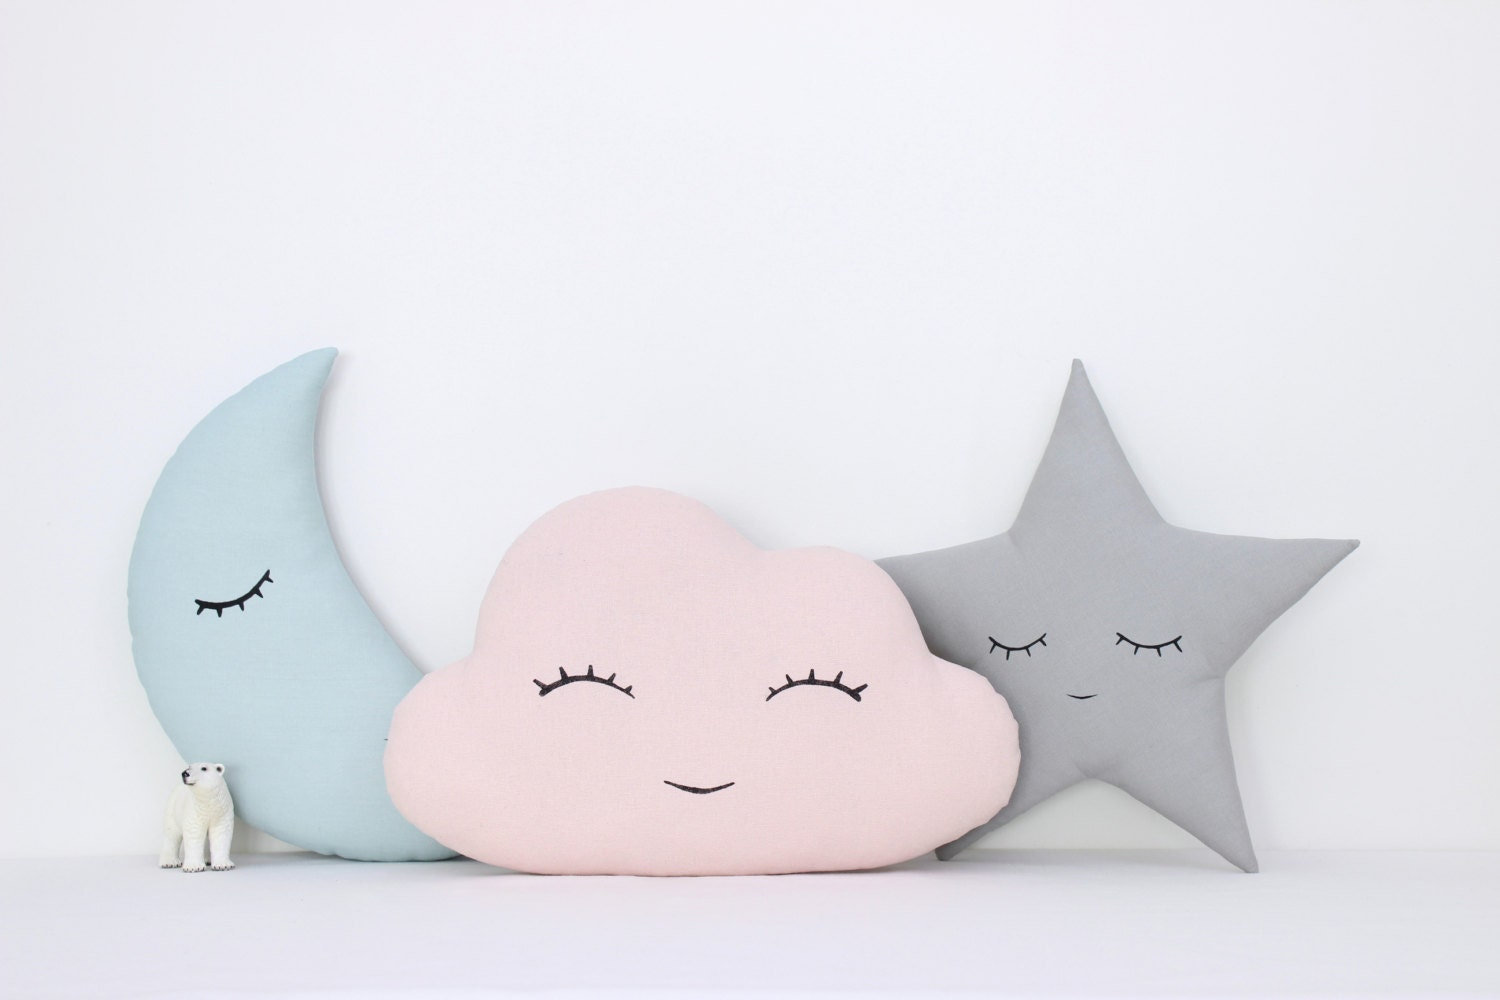 Purple Themed Bedroom Set Of Cloud Moon And Star Pillows Kids Pillows Kids Room